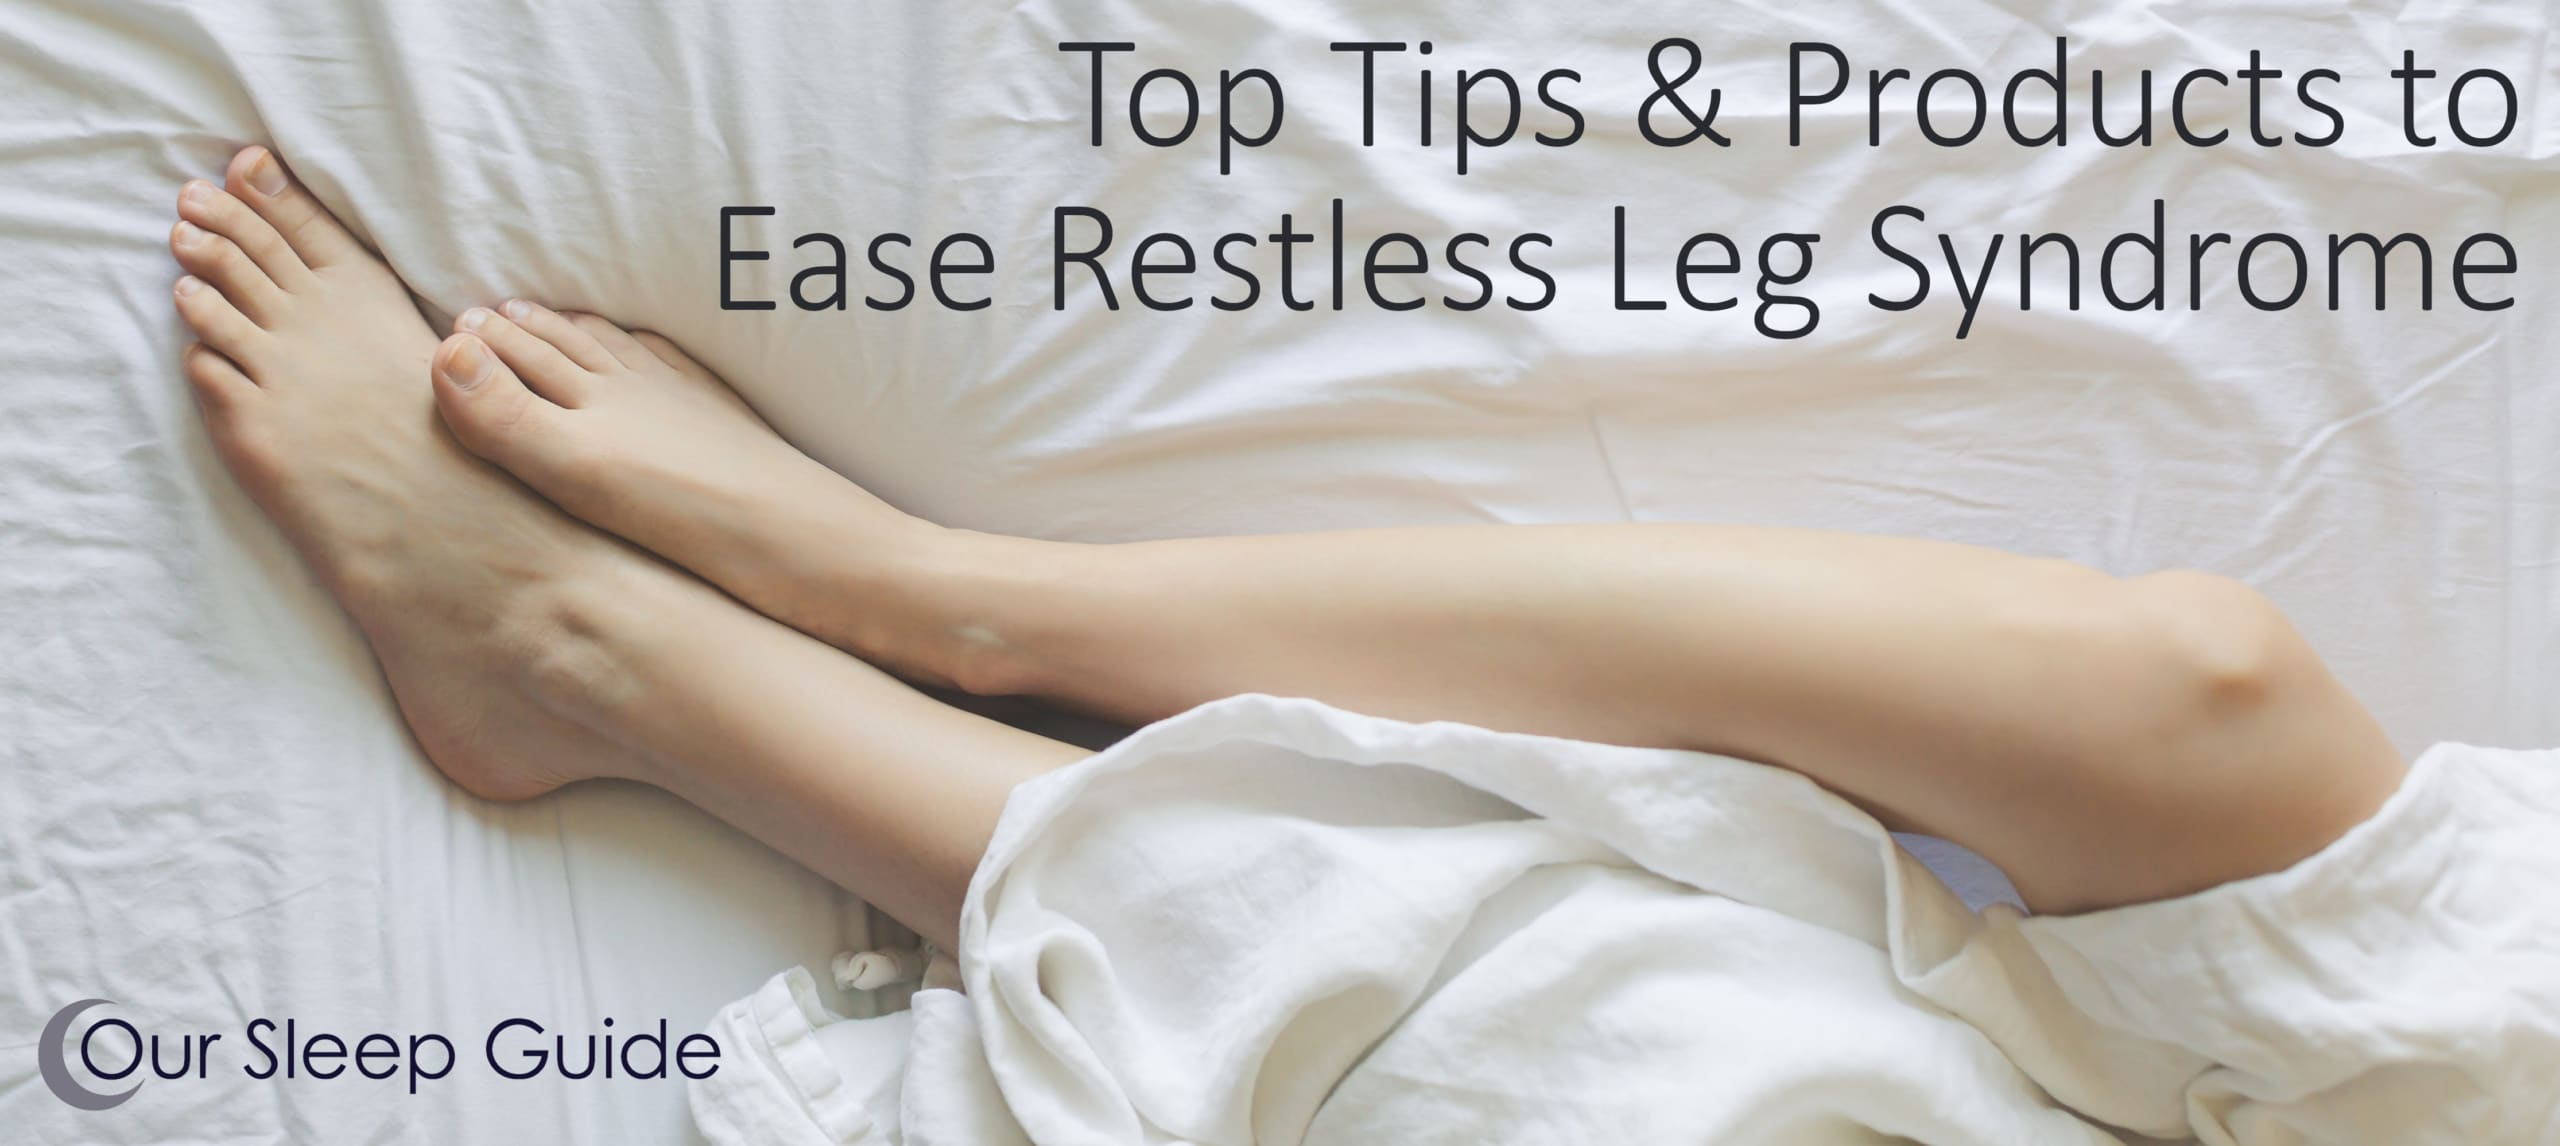 restless leg syndrome top tips and products for easing symptoms